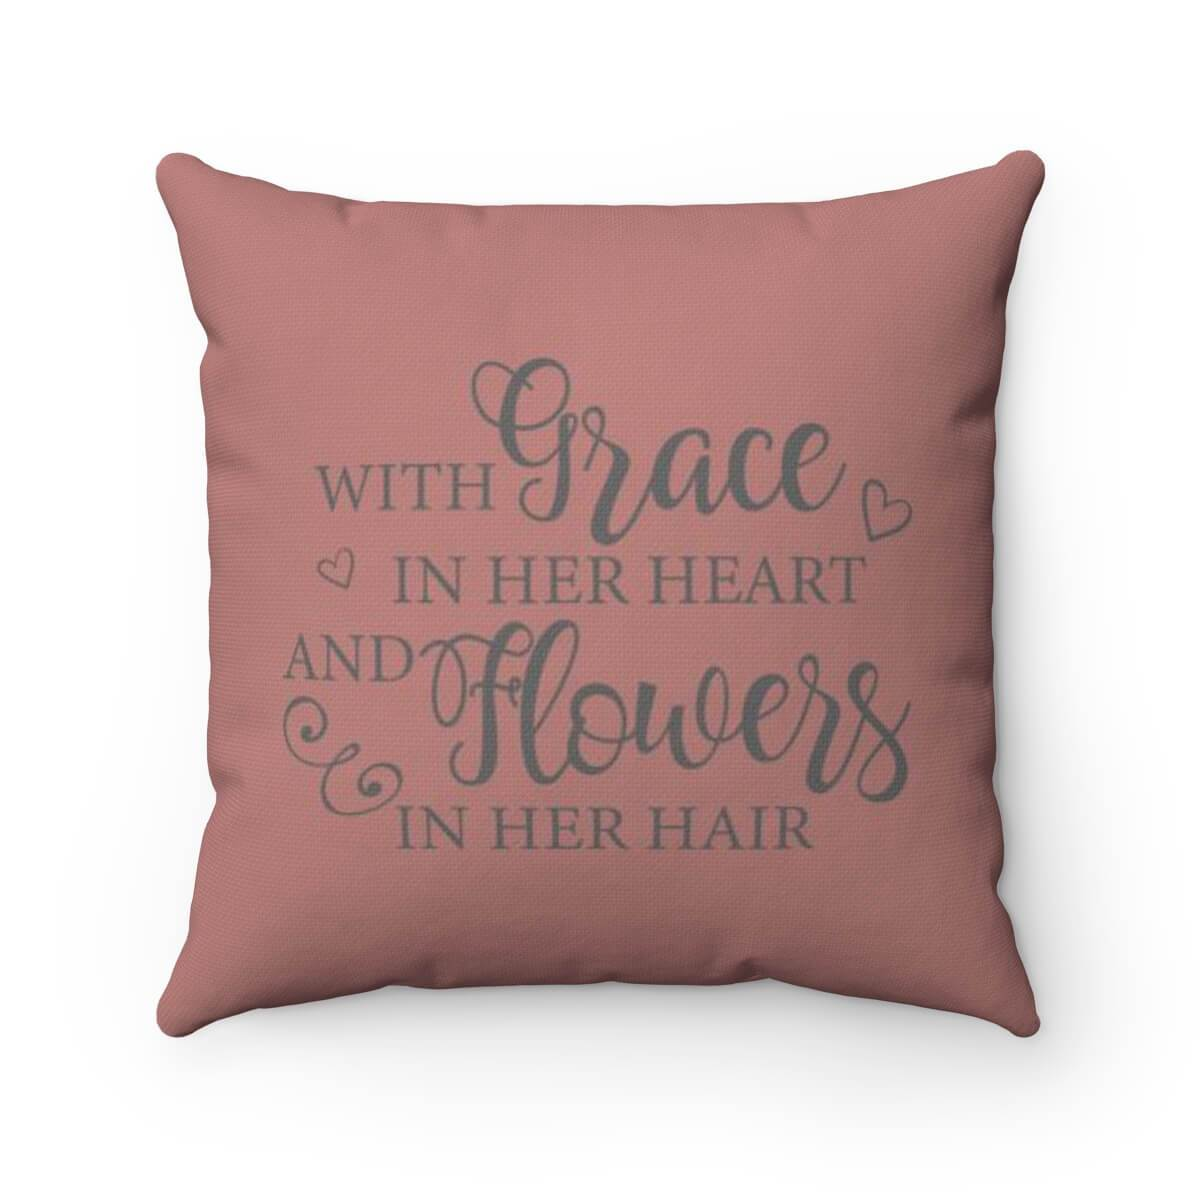 With Grace In Her Heart And Flowers In Her Hair - Pillow